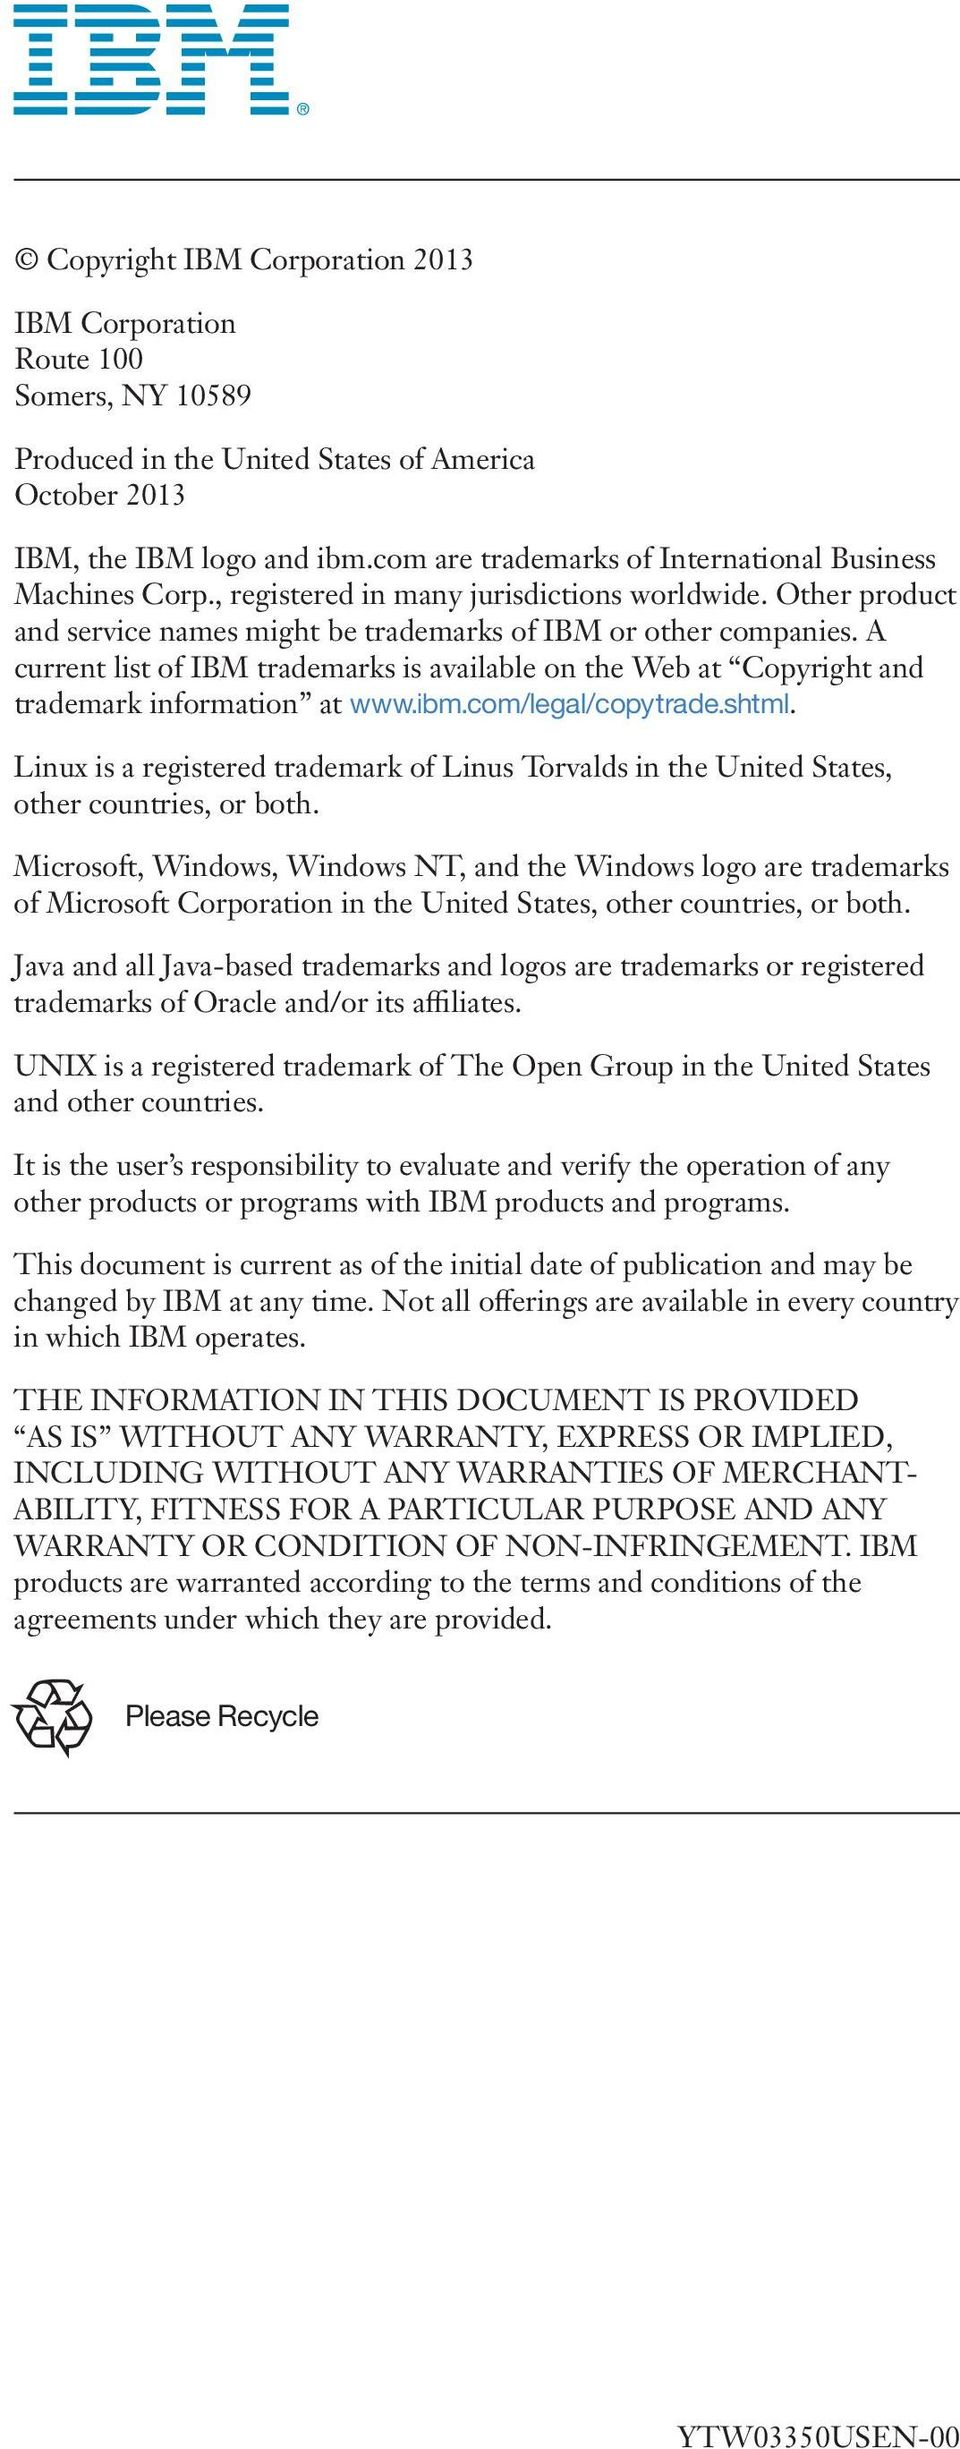 A current list of IBM trademarks is available on the Web at Copyright and trademark information at www.ibm.com/legal/copytrade.shtml.